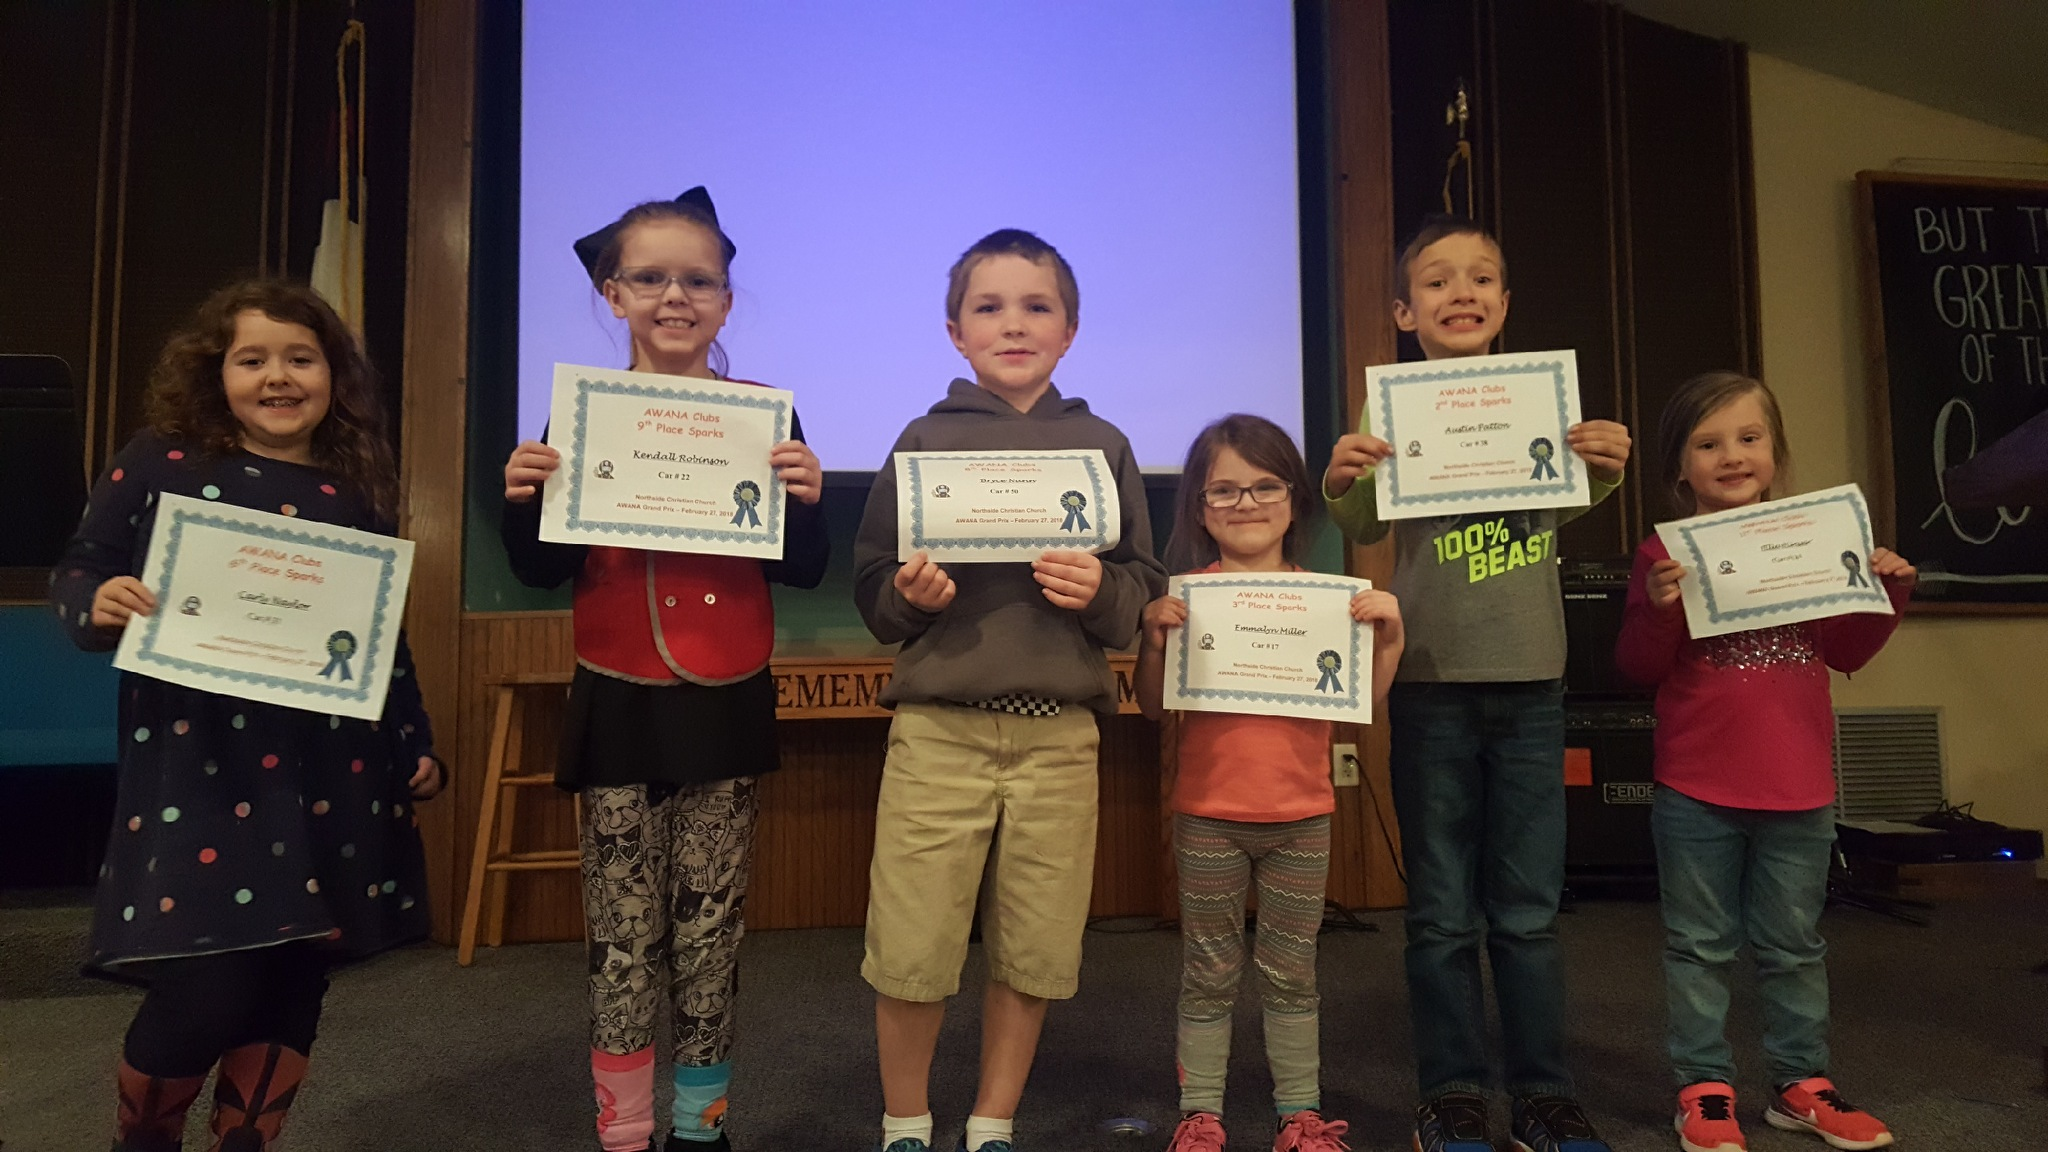 AWANA pinewood derby race awards